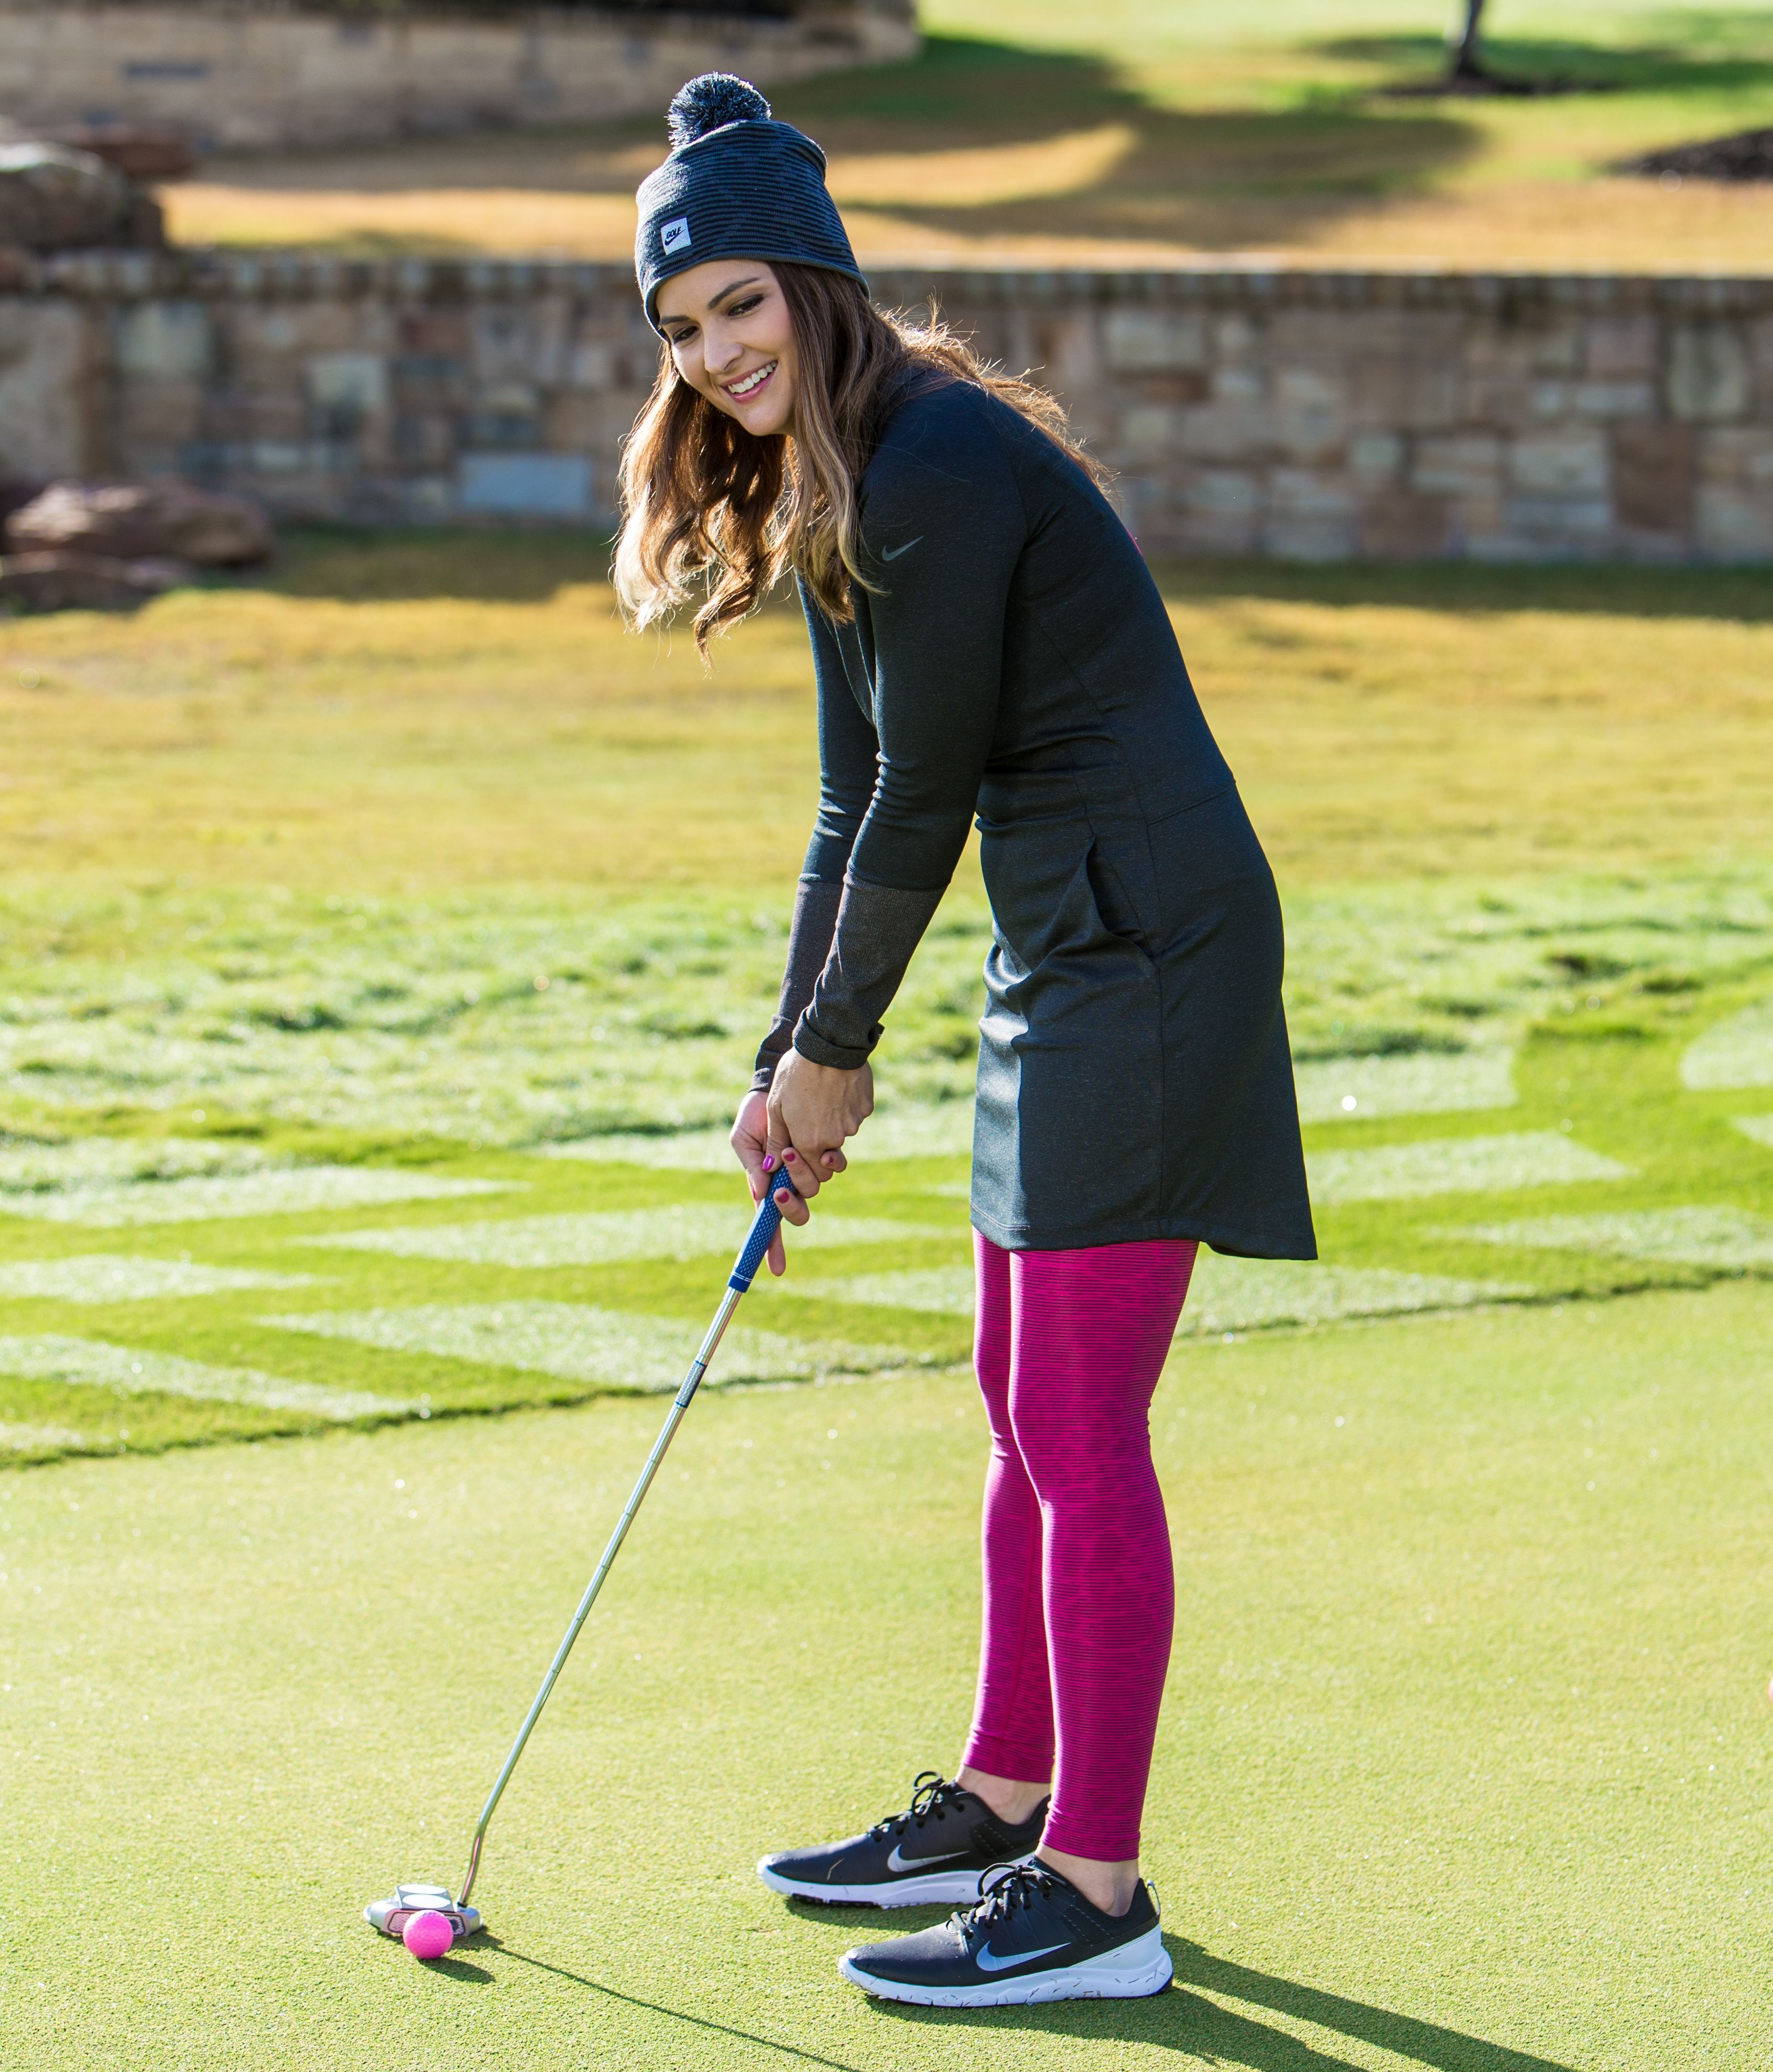 How to Choose the Best Golf Clothes and Other Golf Etiquette Dress Codes for Women